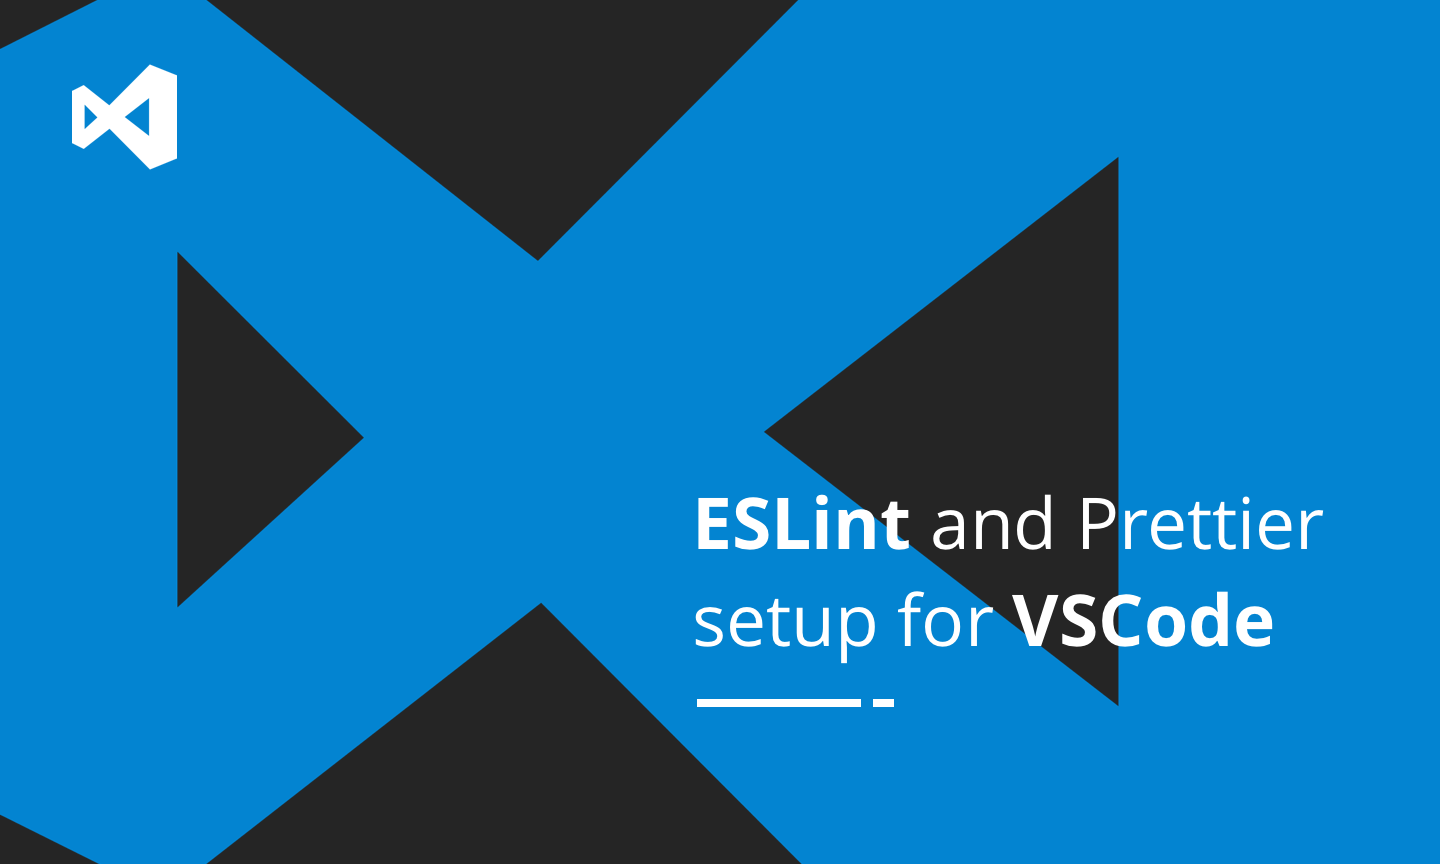 ESLint and Prettier setup for VSCode